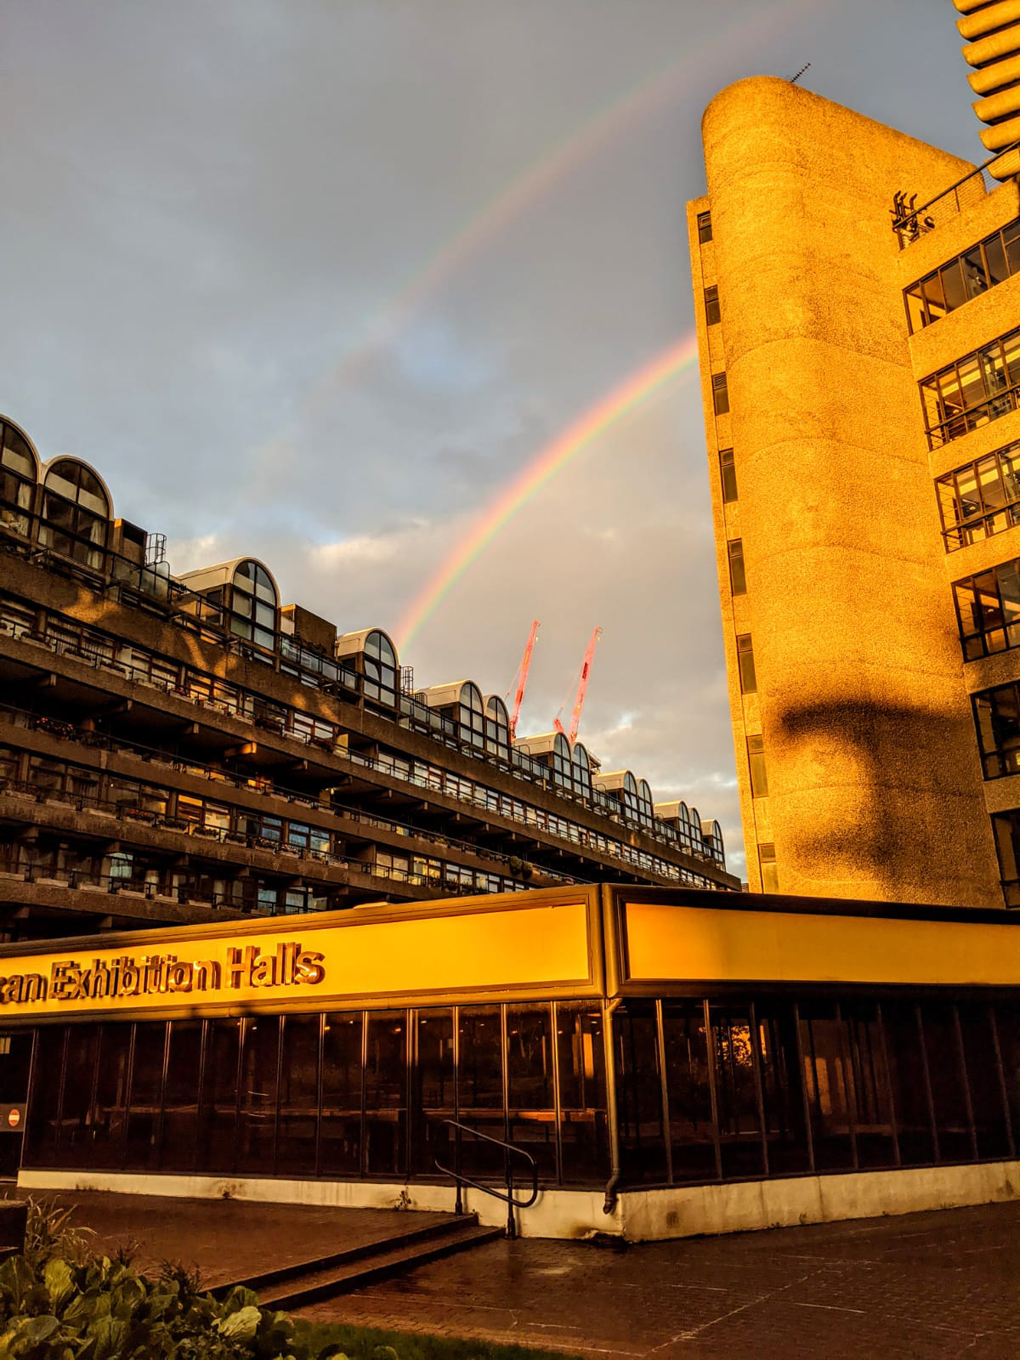 Double rainbow over Barbican exhibition and apartment buildings in central London